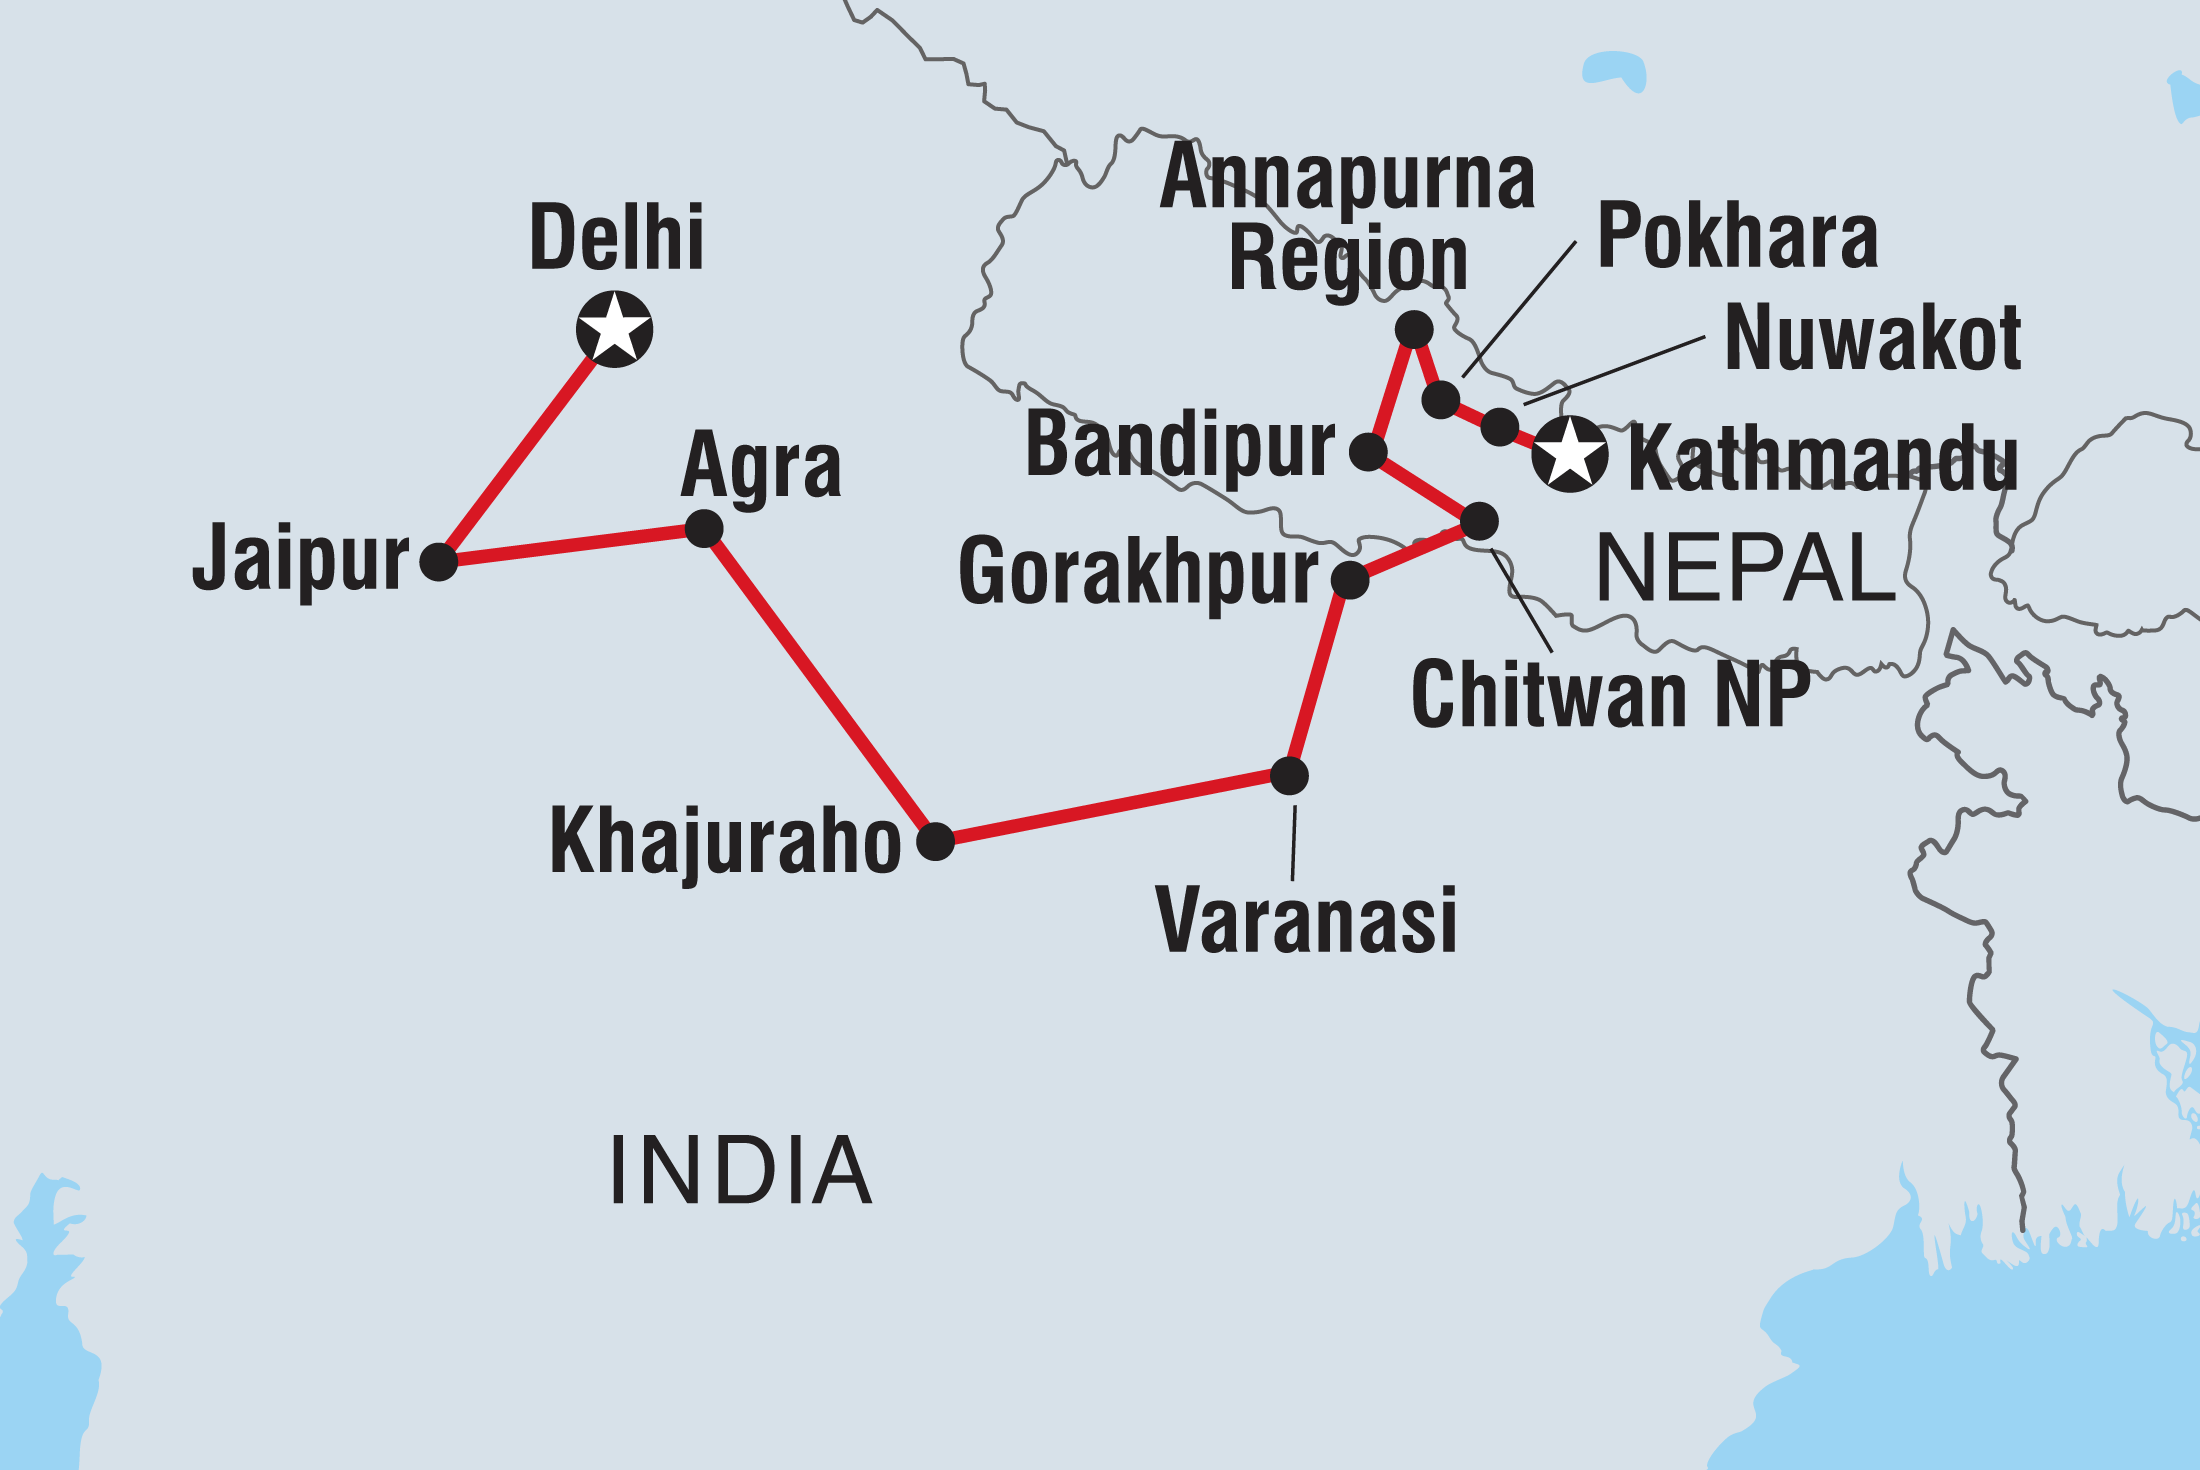 Kathmandu To Delhi Overland Intrepid Travel Us Moonshine Diagram Related Keywords Suggestions